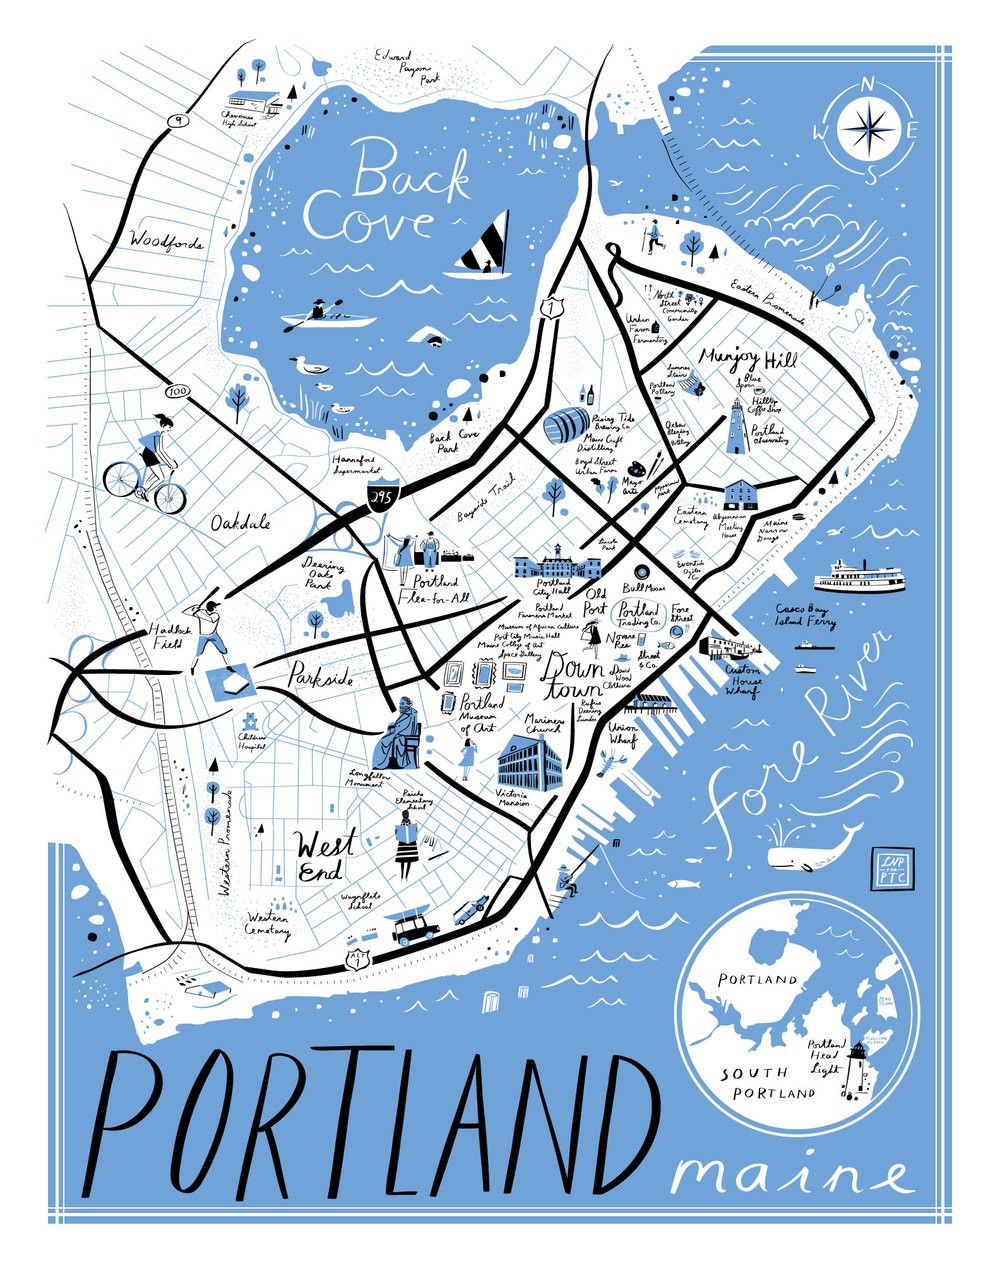 Maine Map Images.Portland Maine Map Libby Vanderploeg